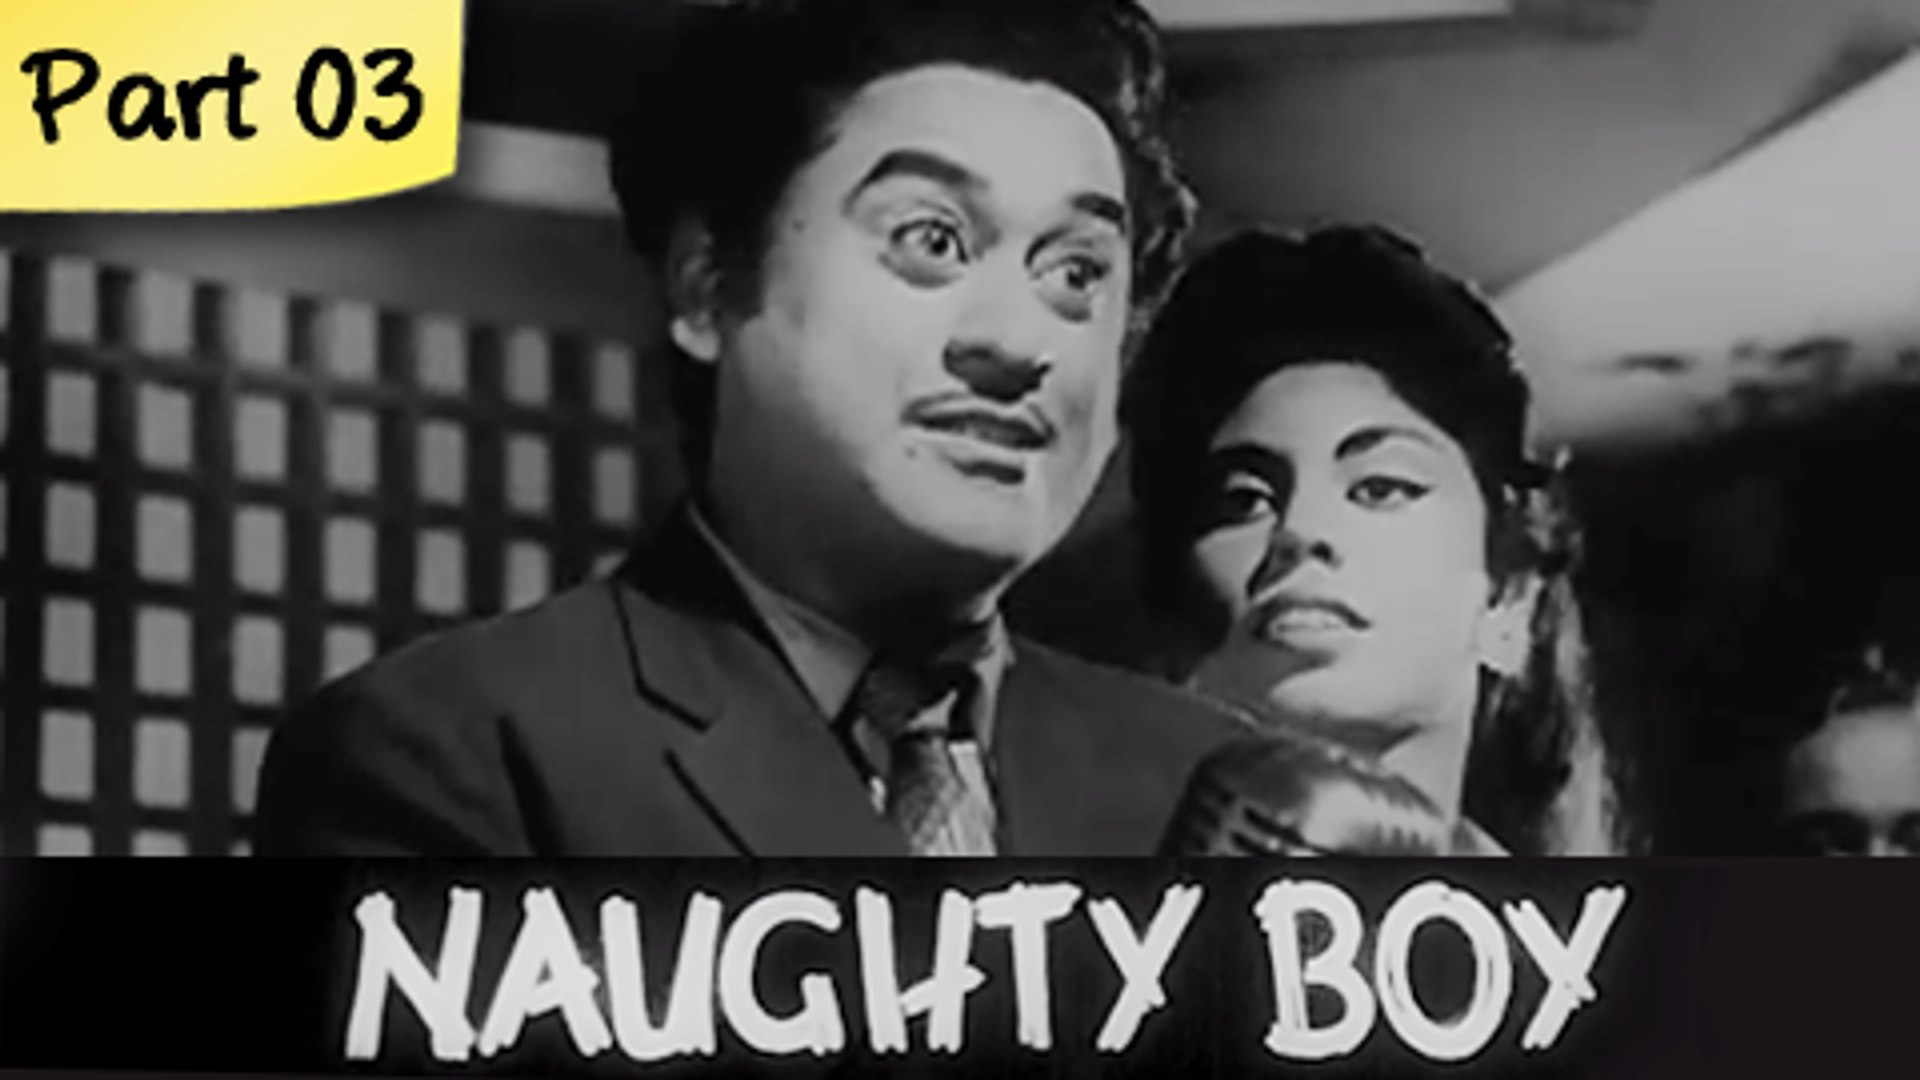 Naughty Boy - Part 03/09 - Classic Funny Hit Hindi Drama Movie - Kishore Kumar, Kalpana